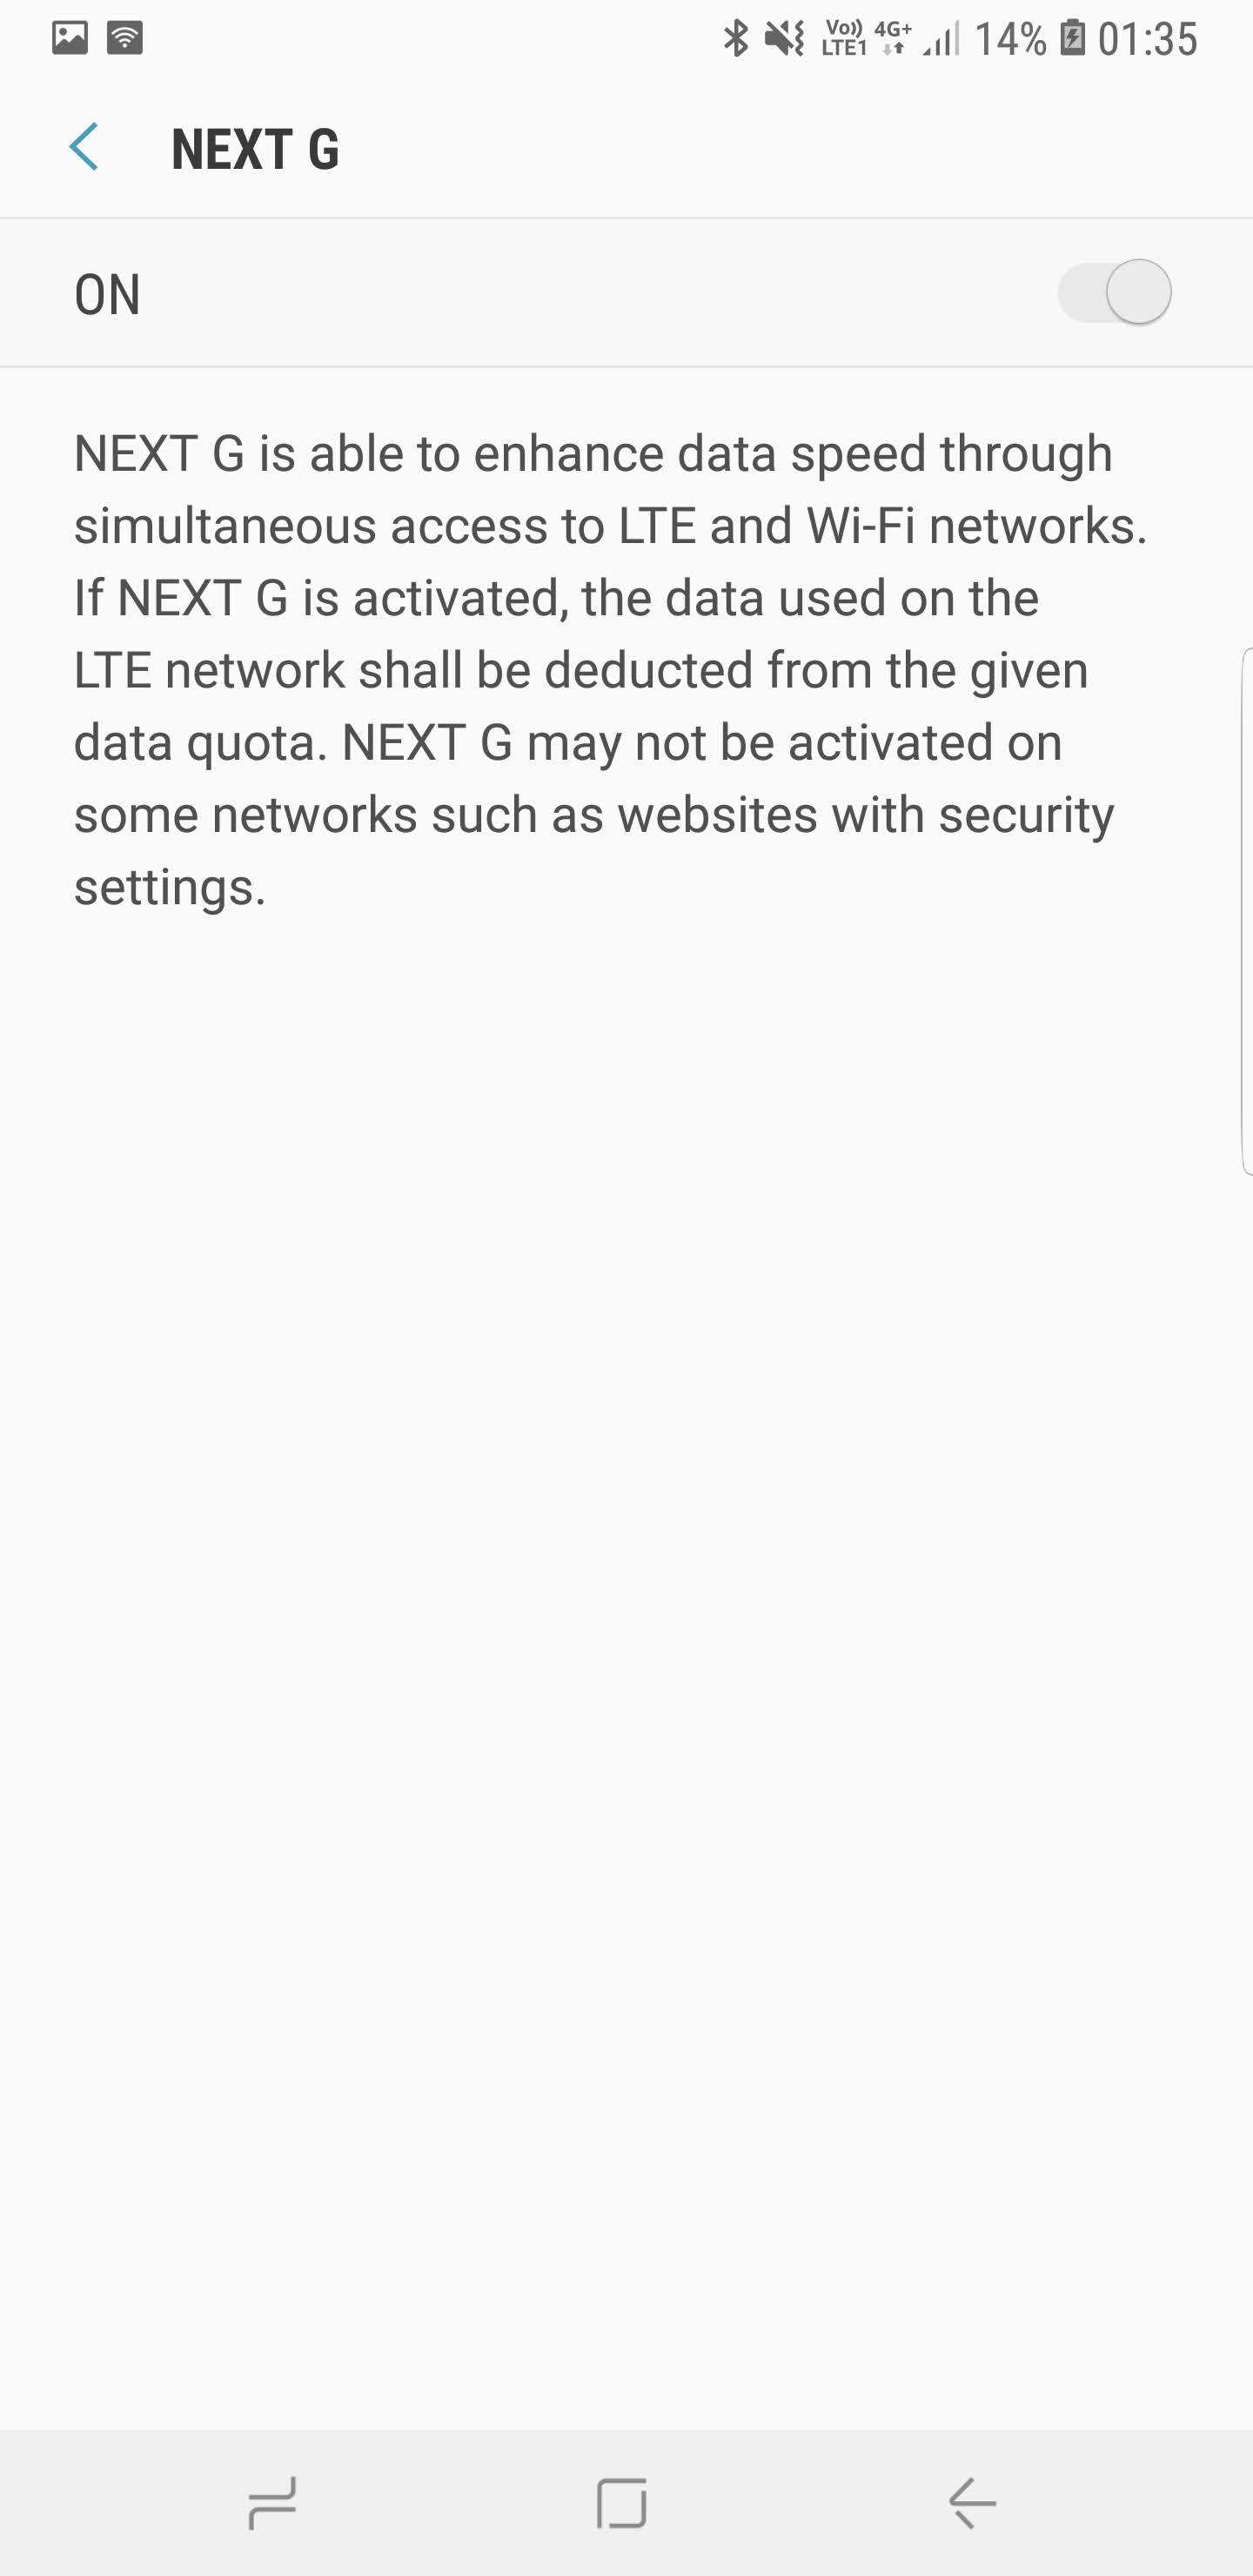 Samsung Galaxy Note 9 Next G Setting